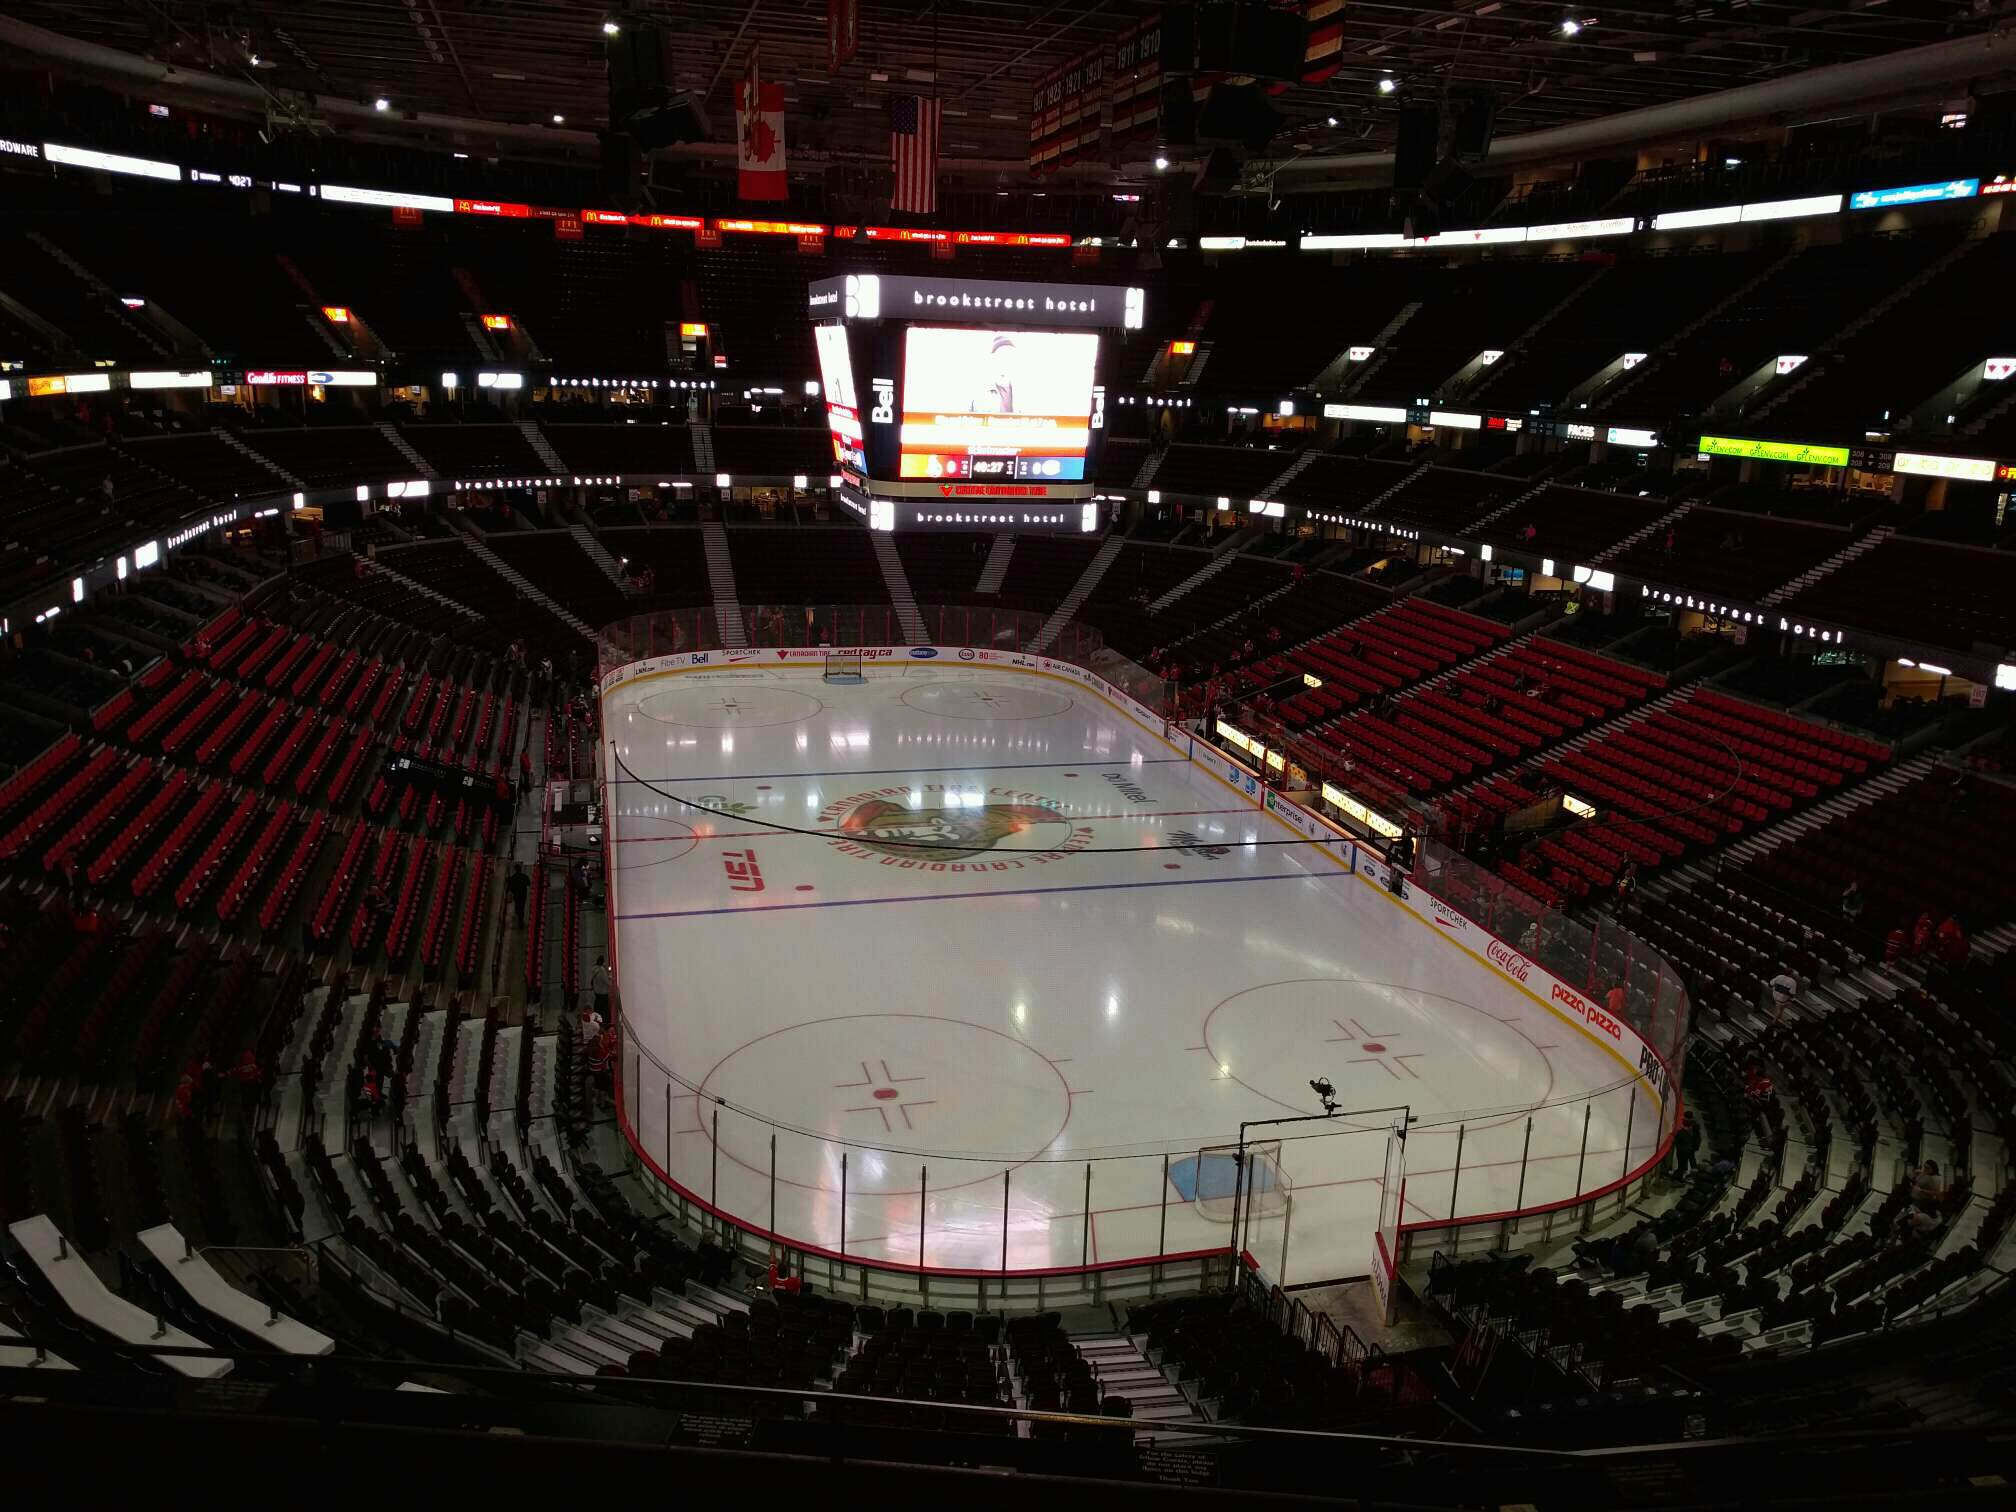 Canadian Tire Centre Section 316 Row d Seat 12